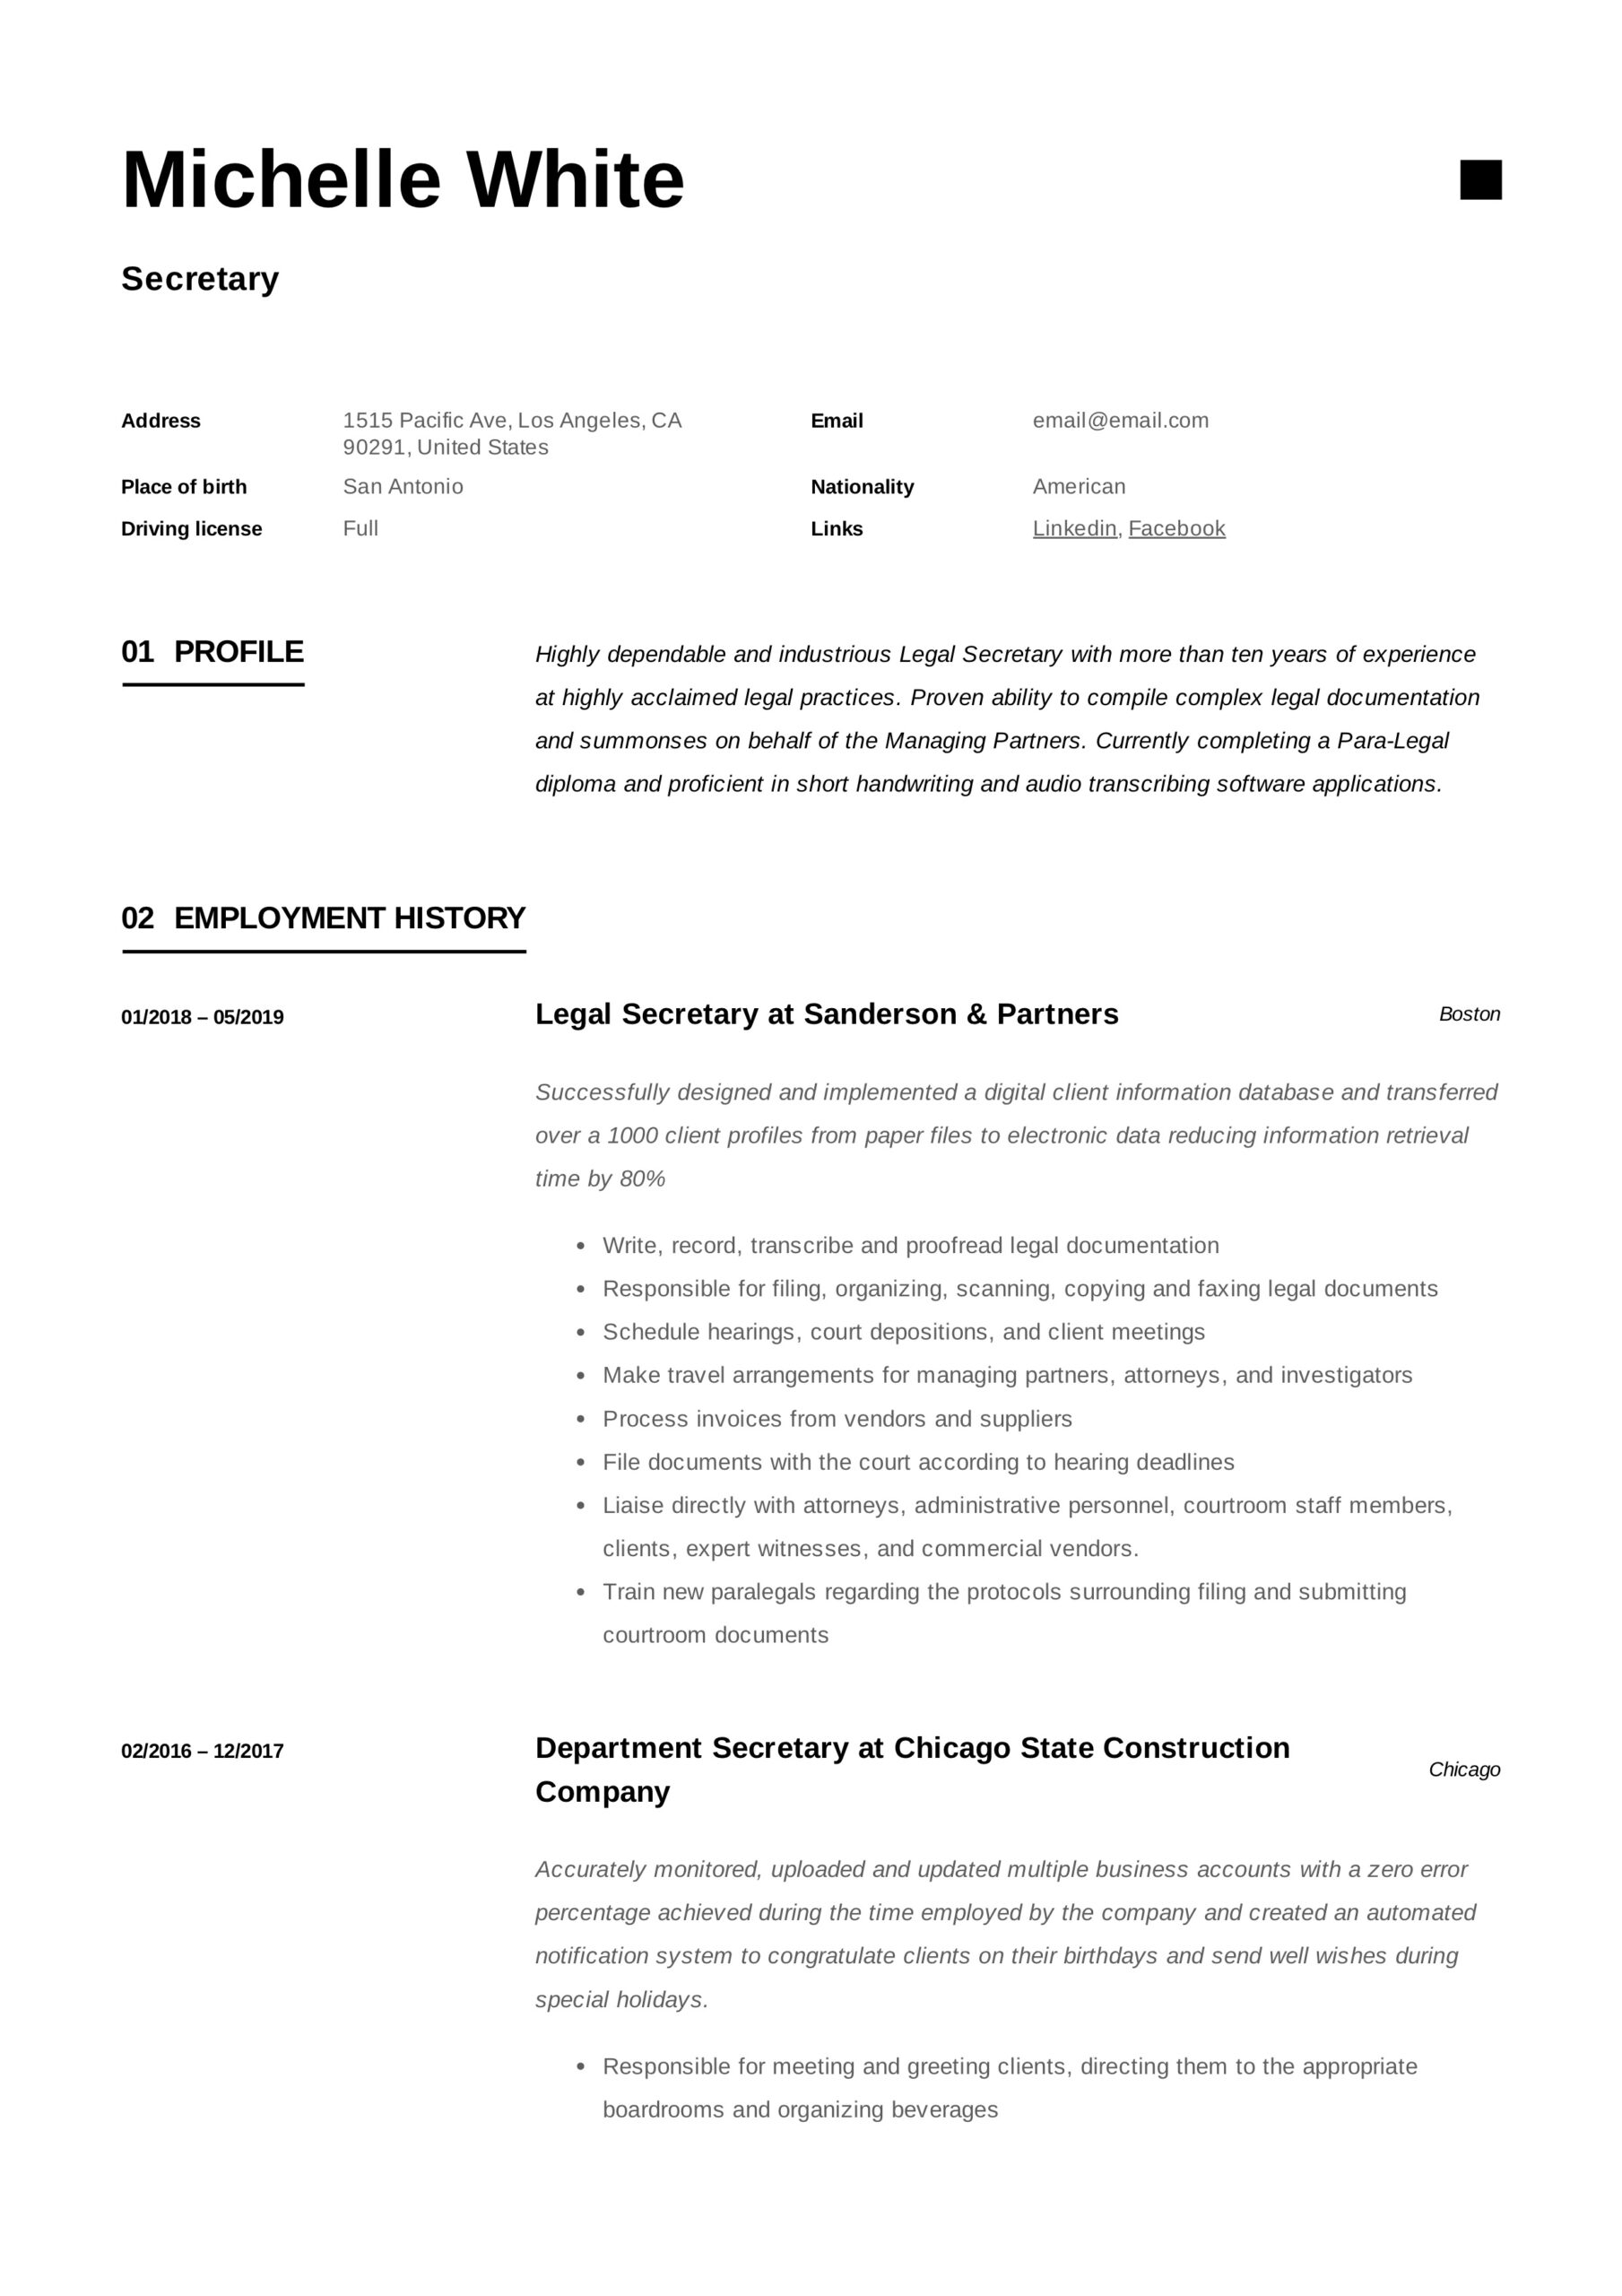 secretary resume writing guide template samples pdf company profile orthopedic executive Resume Company Secretary Profile Resume